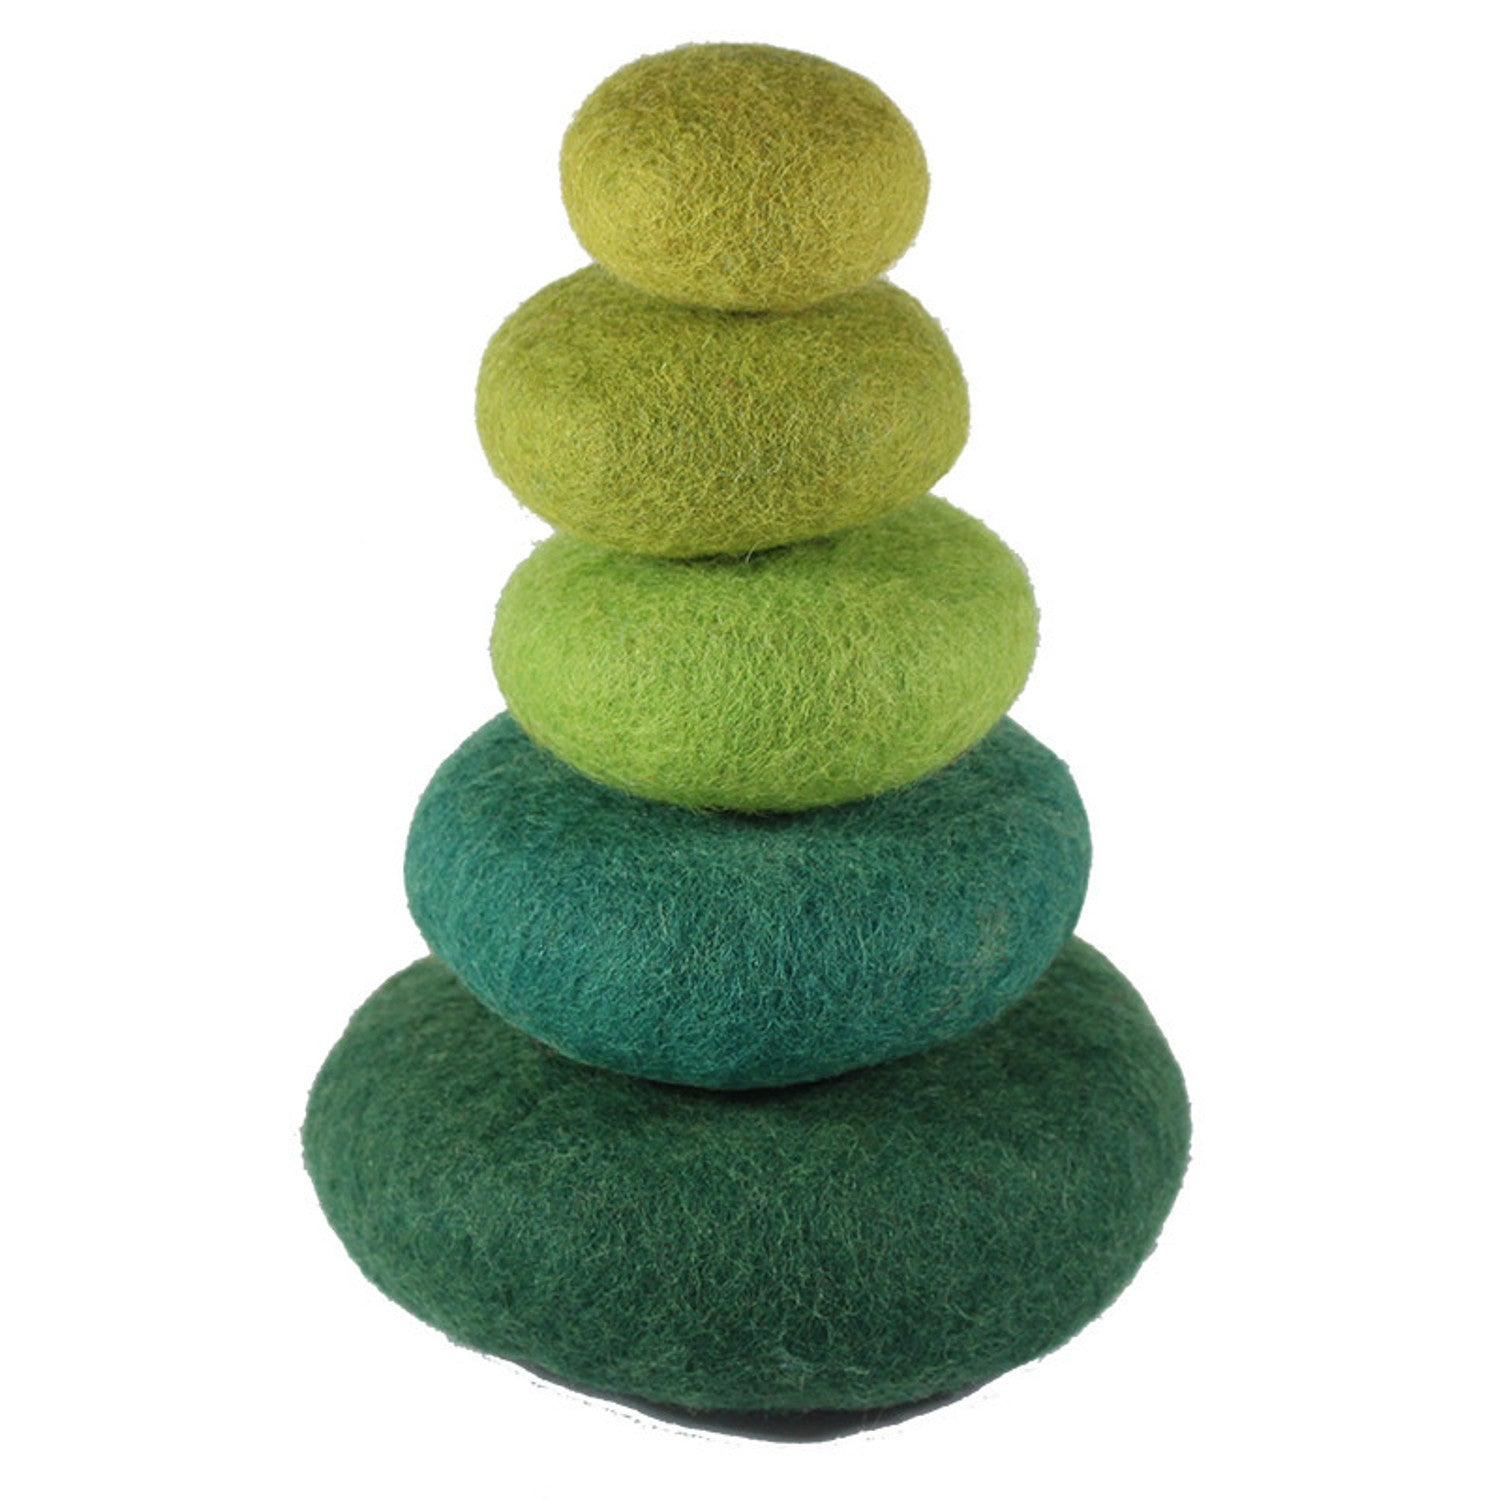 Papoose Felt Stacking Rocks Green